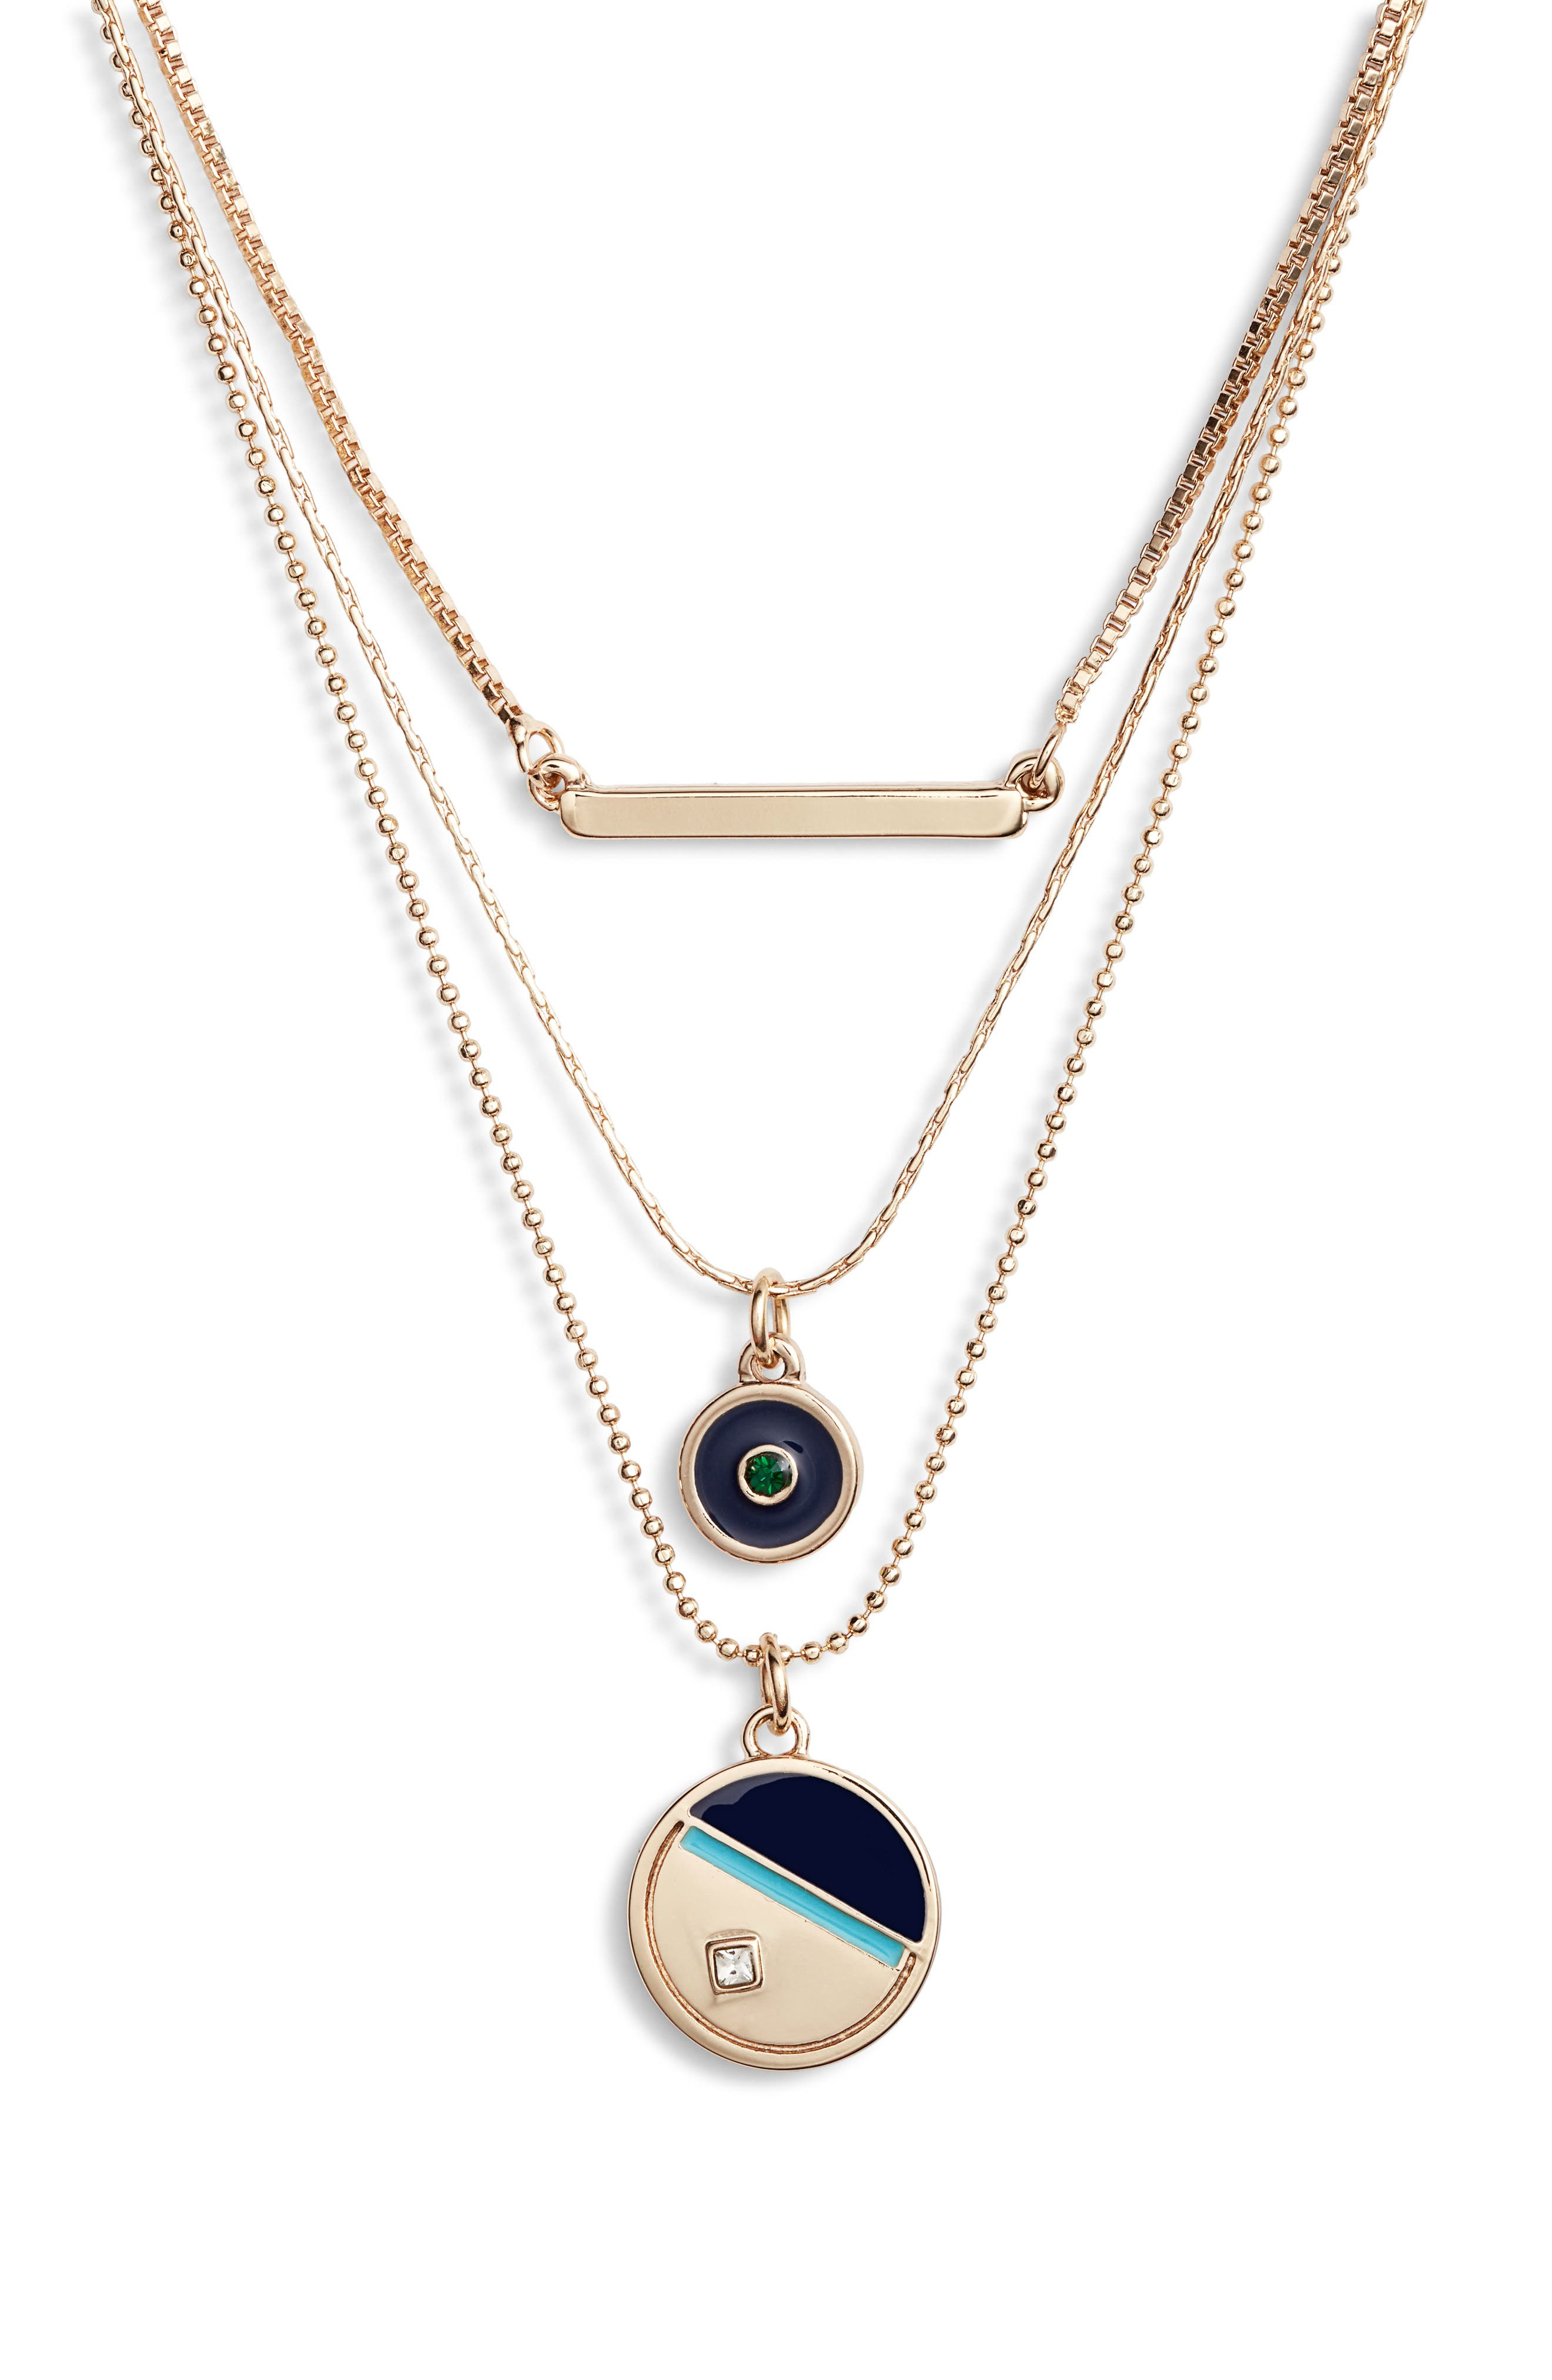 3-Tier Disc Necklace, Main, color, TURQUOISE- NAVY- GOLD